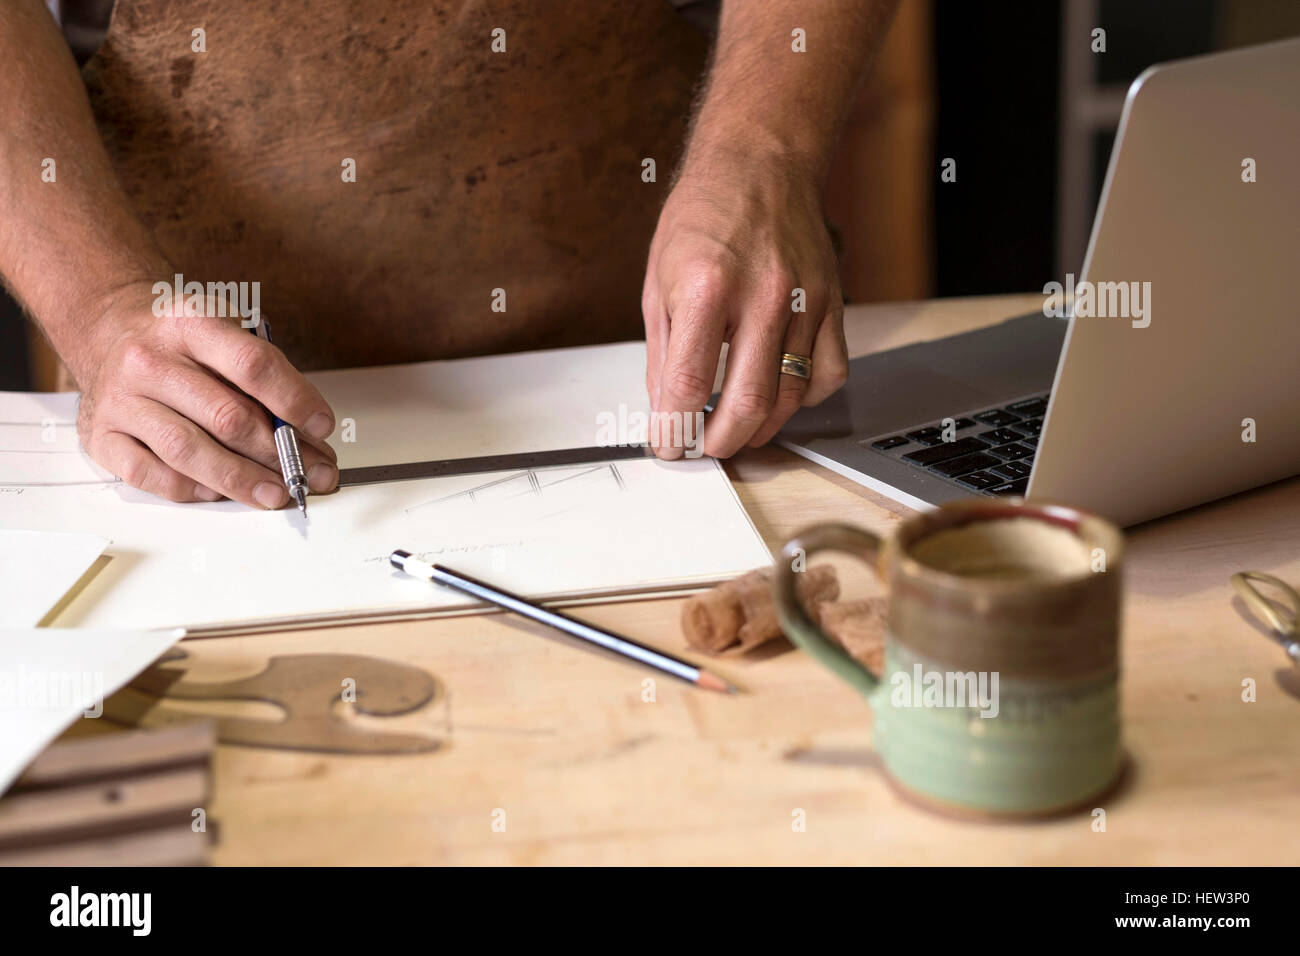 Carpenter at his workshop, close up view of hand drawing - Stock Image